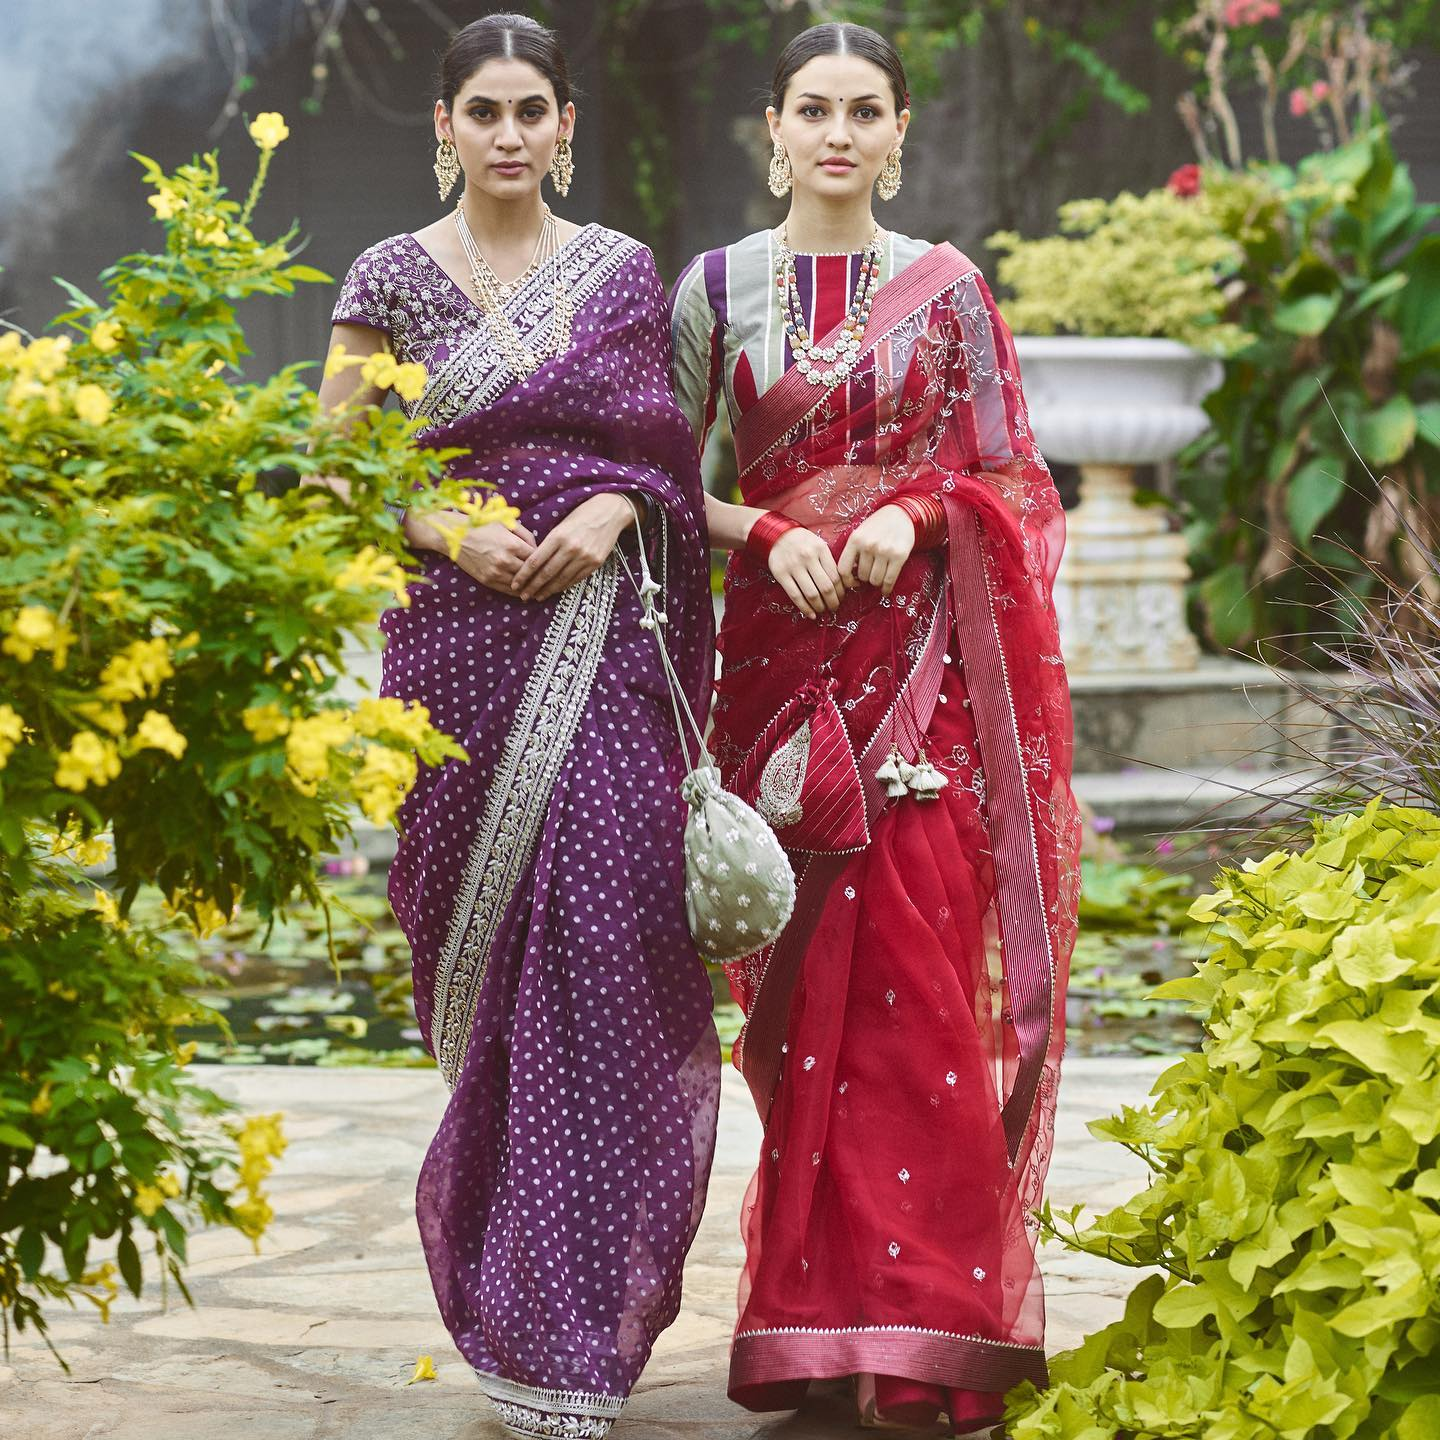 Phulwari . Seen on Andleeb is organza benaras purple saree with a beautiful dori work border paired with a stunning cutdana blouse. On Gulshaat is red organza saree with intricate pita embroidery. The red saree is paired with a patchwork blouse to give it a modern twist.  To shop new collection Phulwari DM  or Whatsapp  on +91 6302 878 533… 2021-05-08